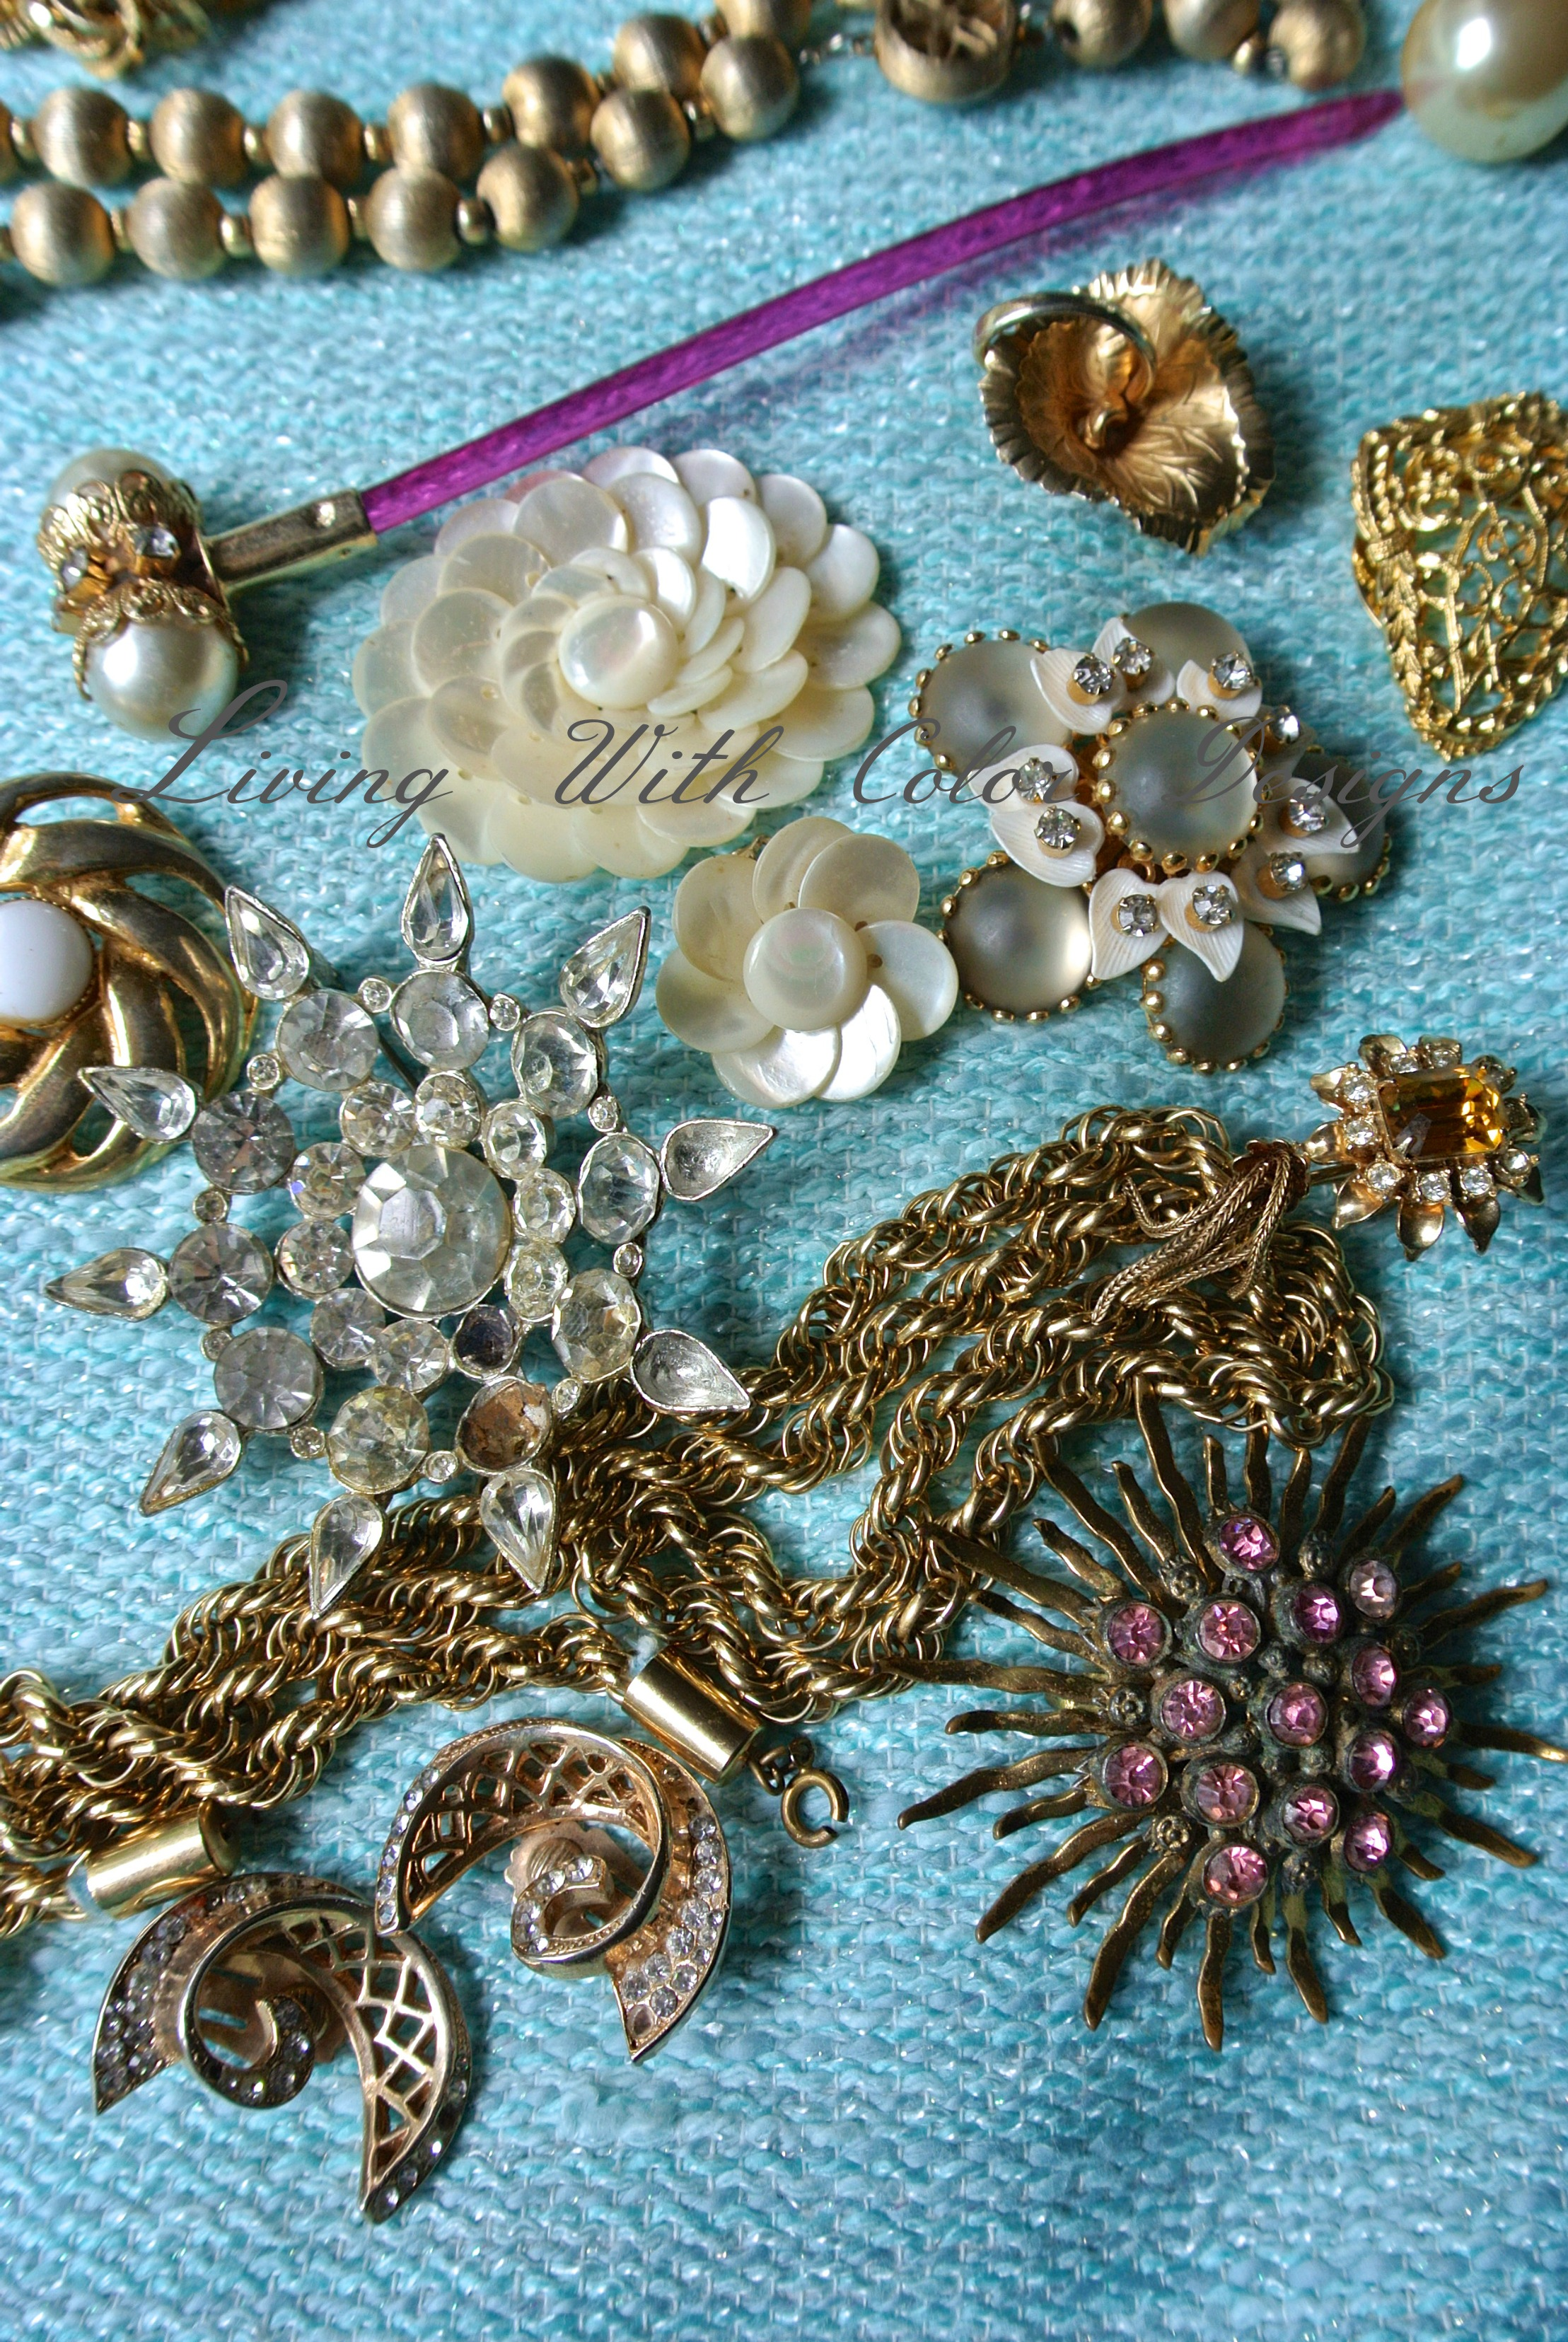 Assortment of costume jewelry livingwithcolordesigns.com